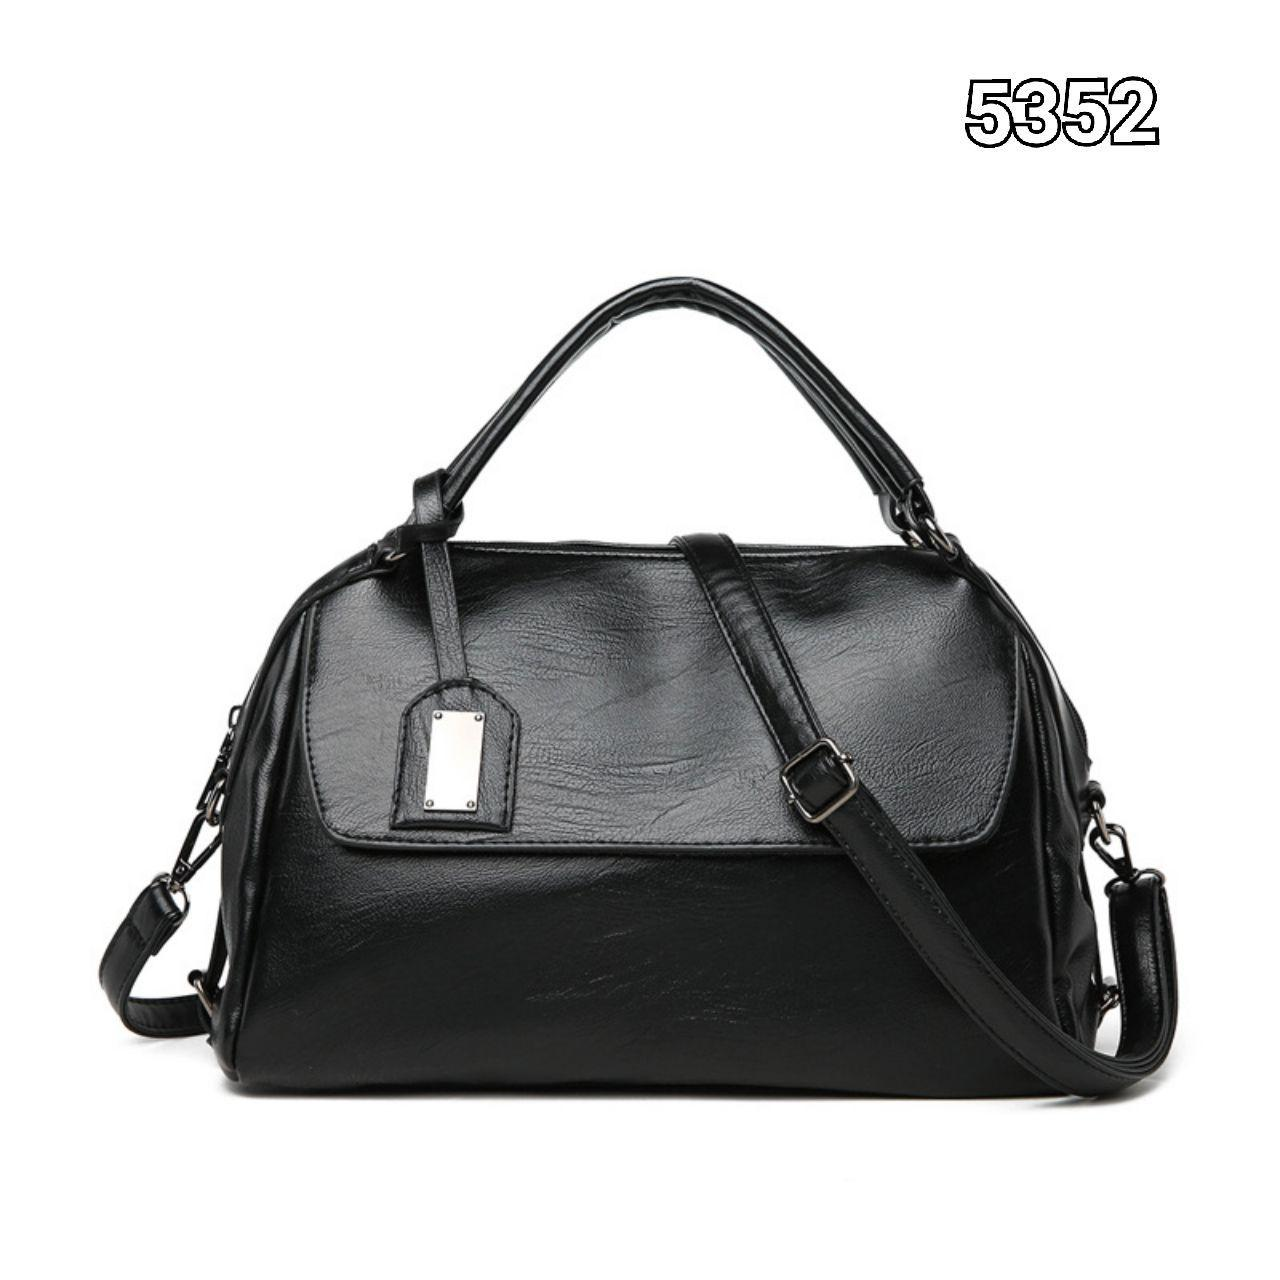 5352 Simple Casual Handbag (Black)